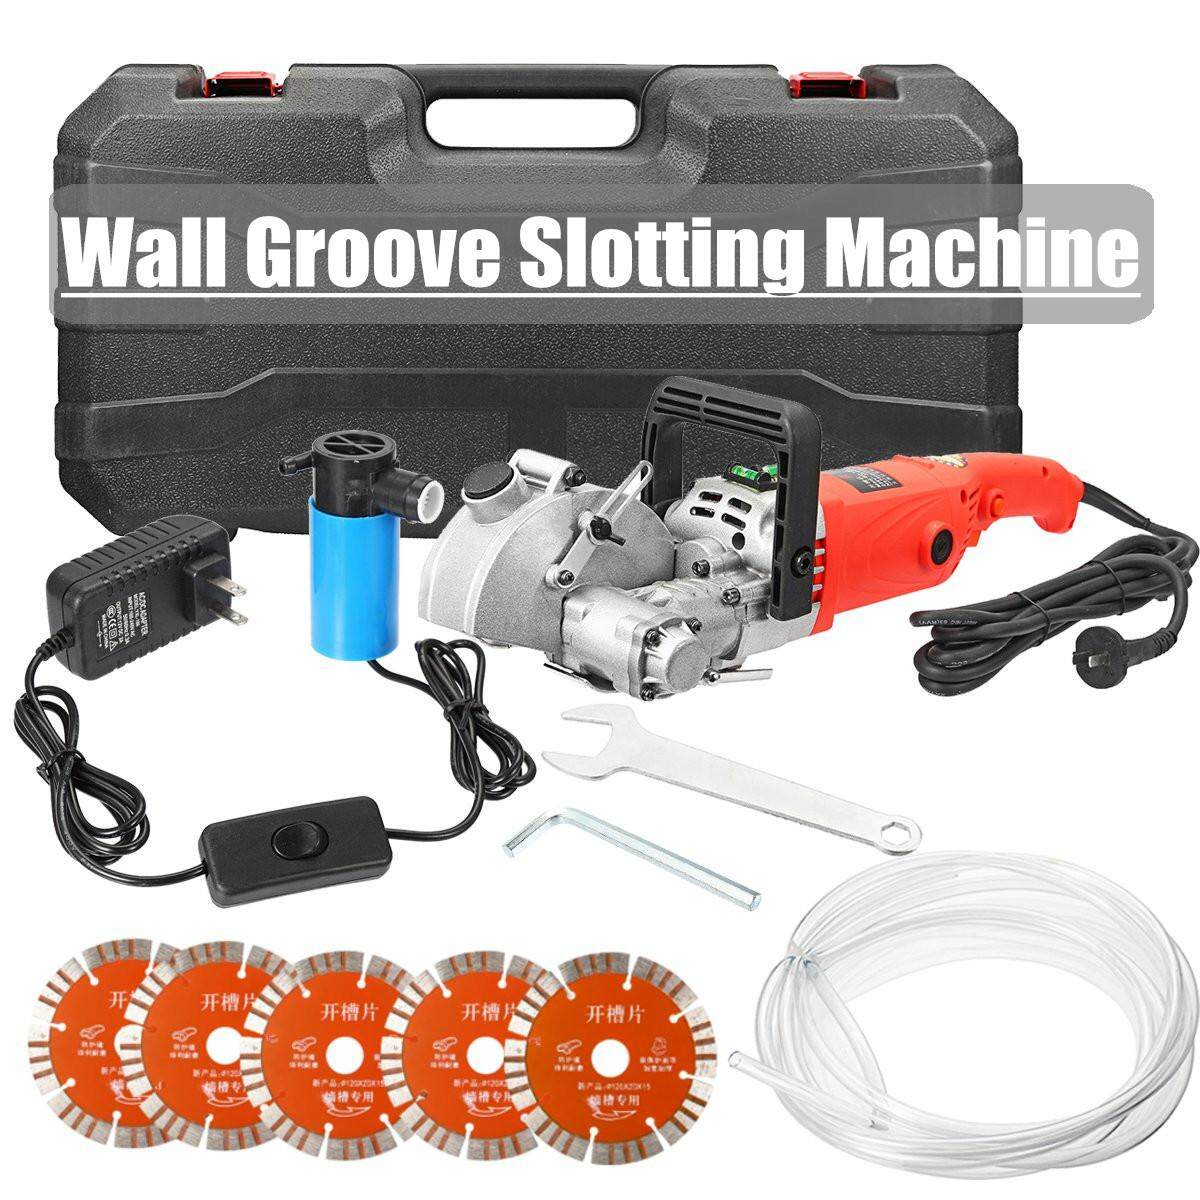 High quality Electric Wall Groove Cutting Slotting Machine 5800W 52MM Depth NEW